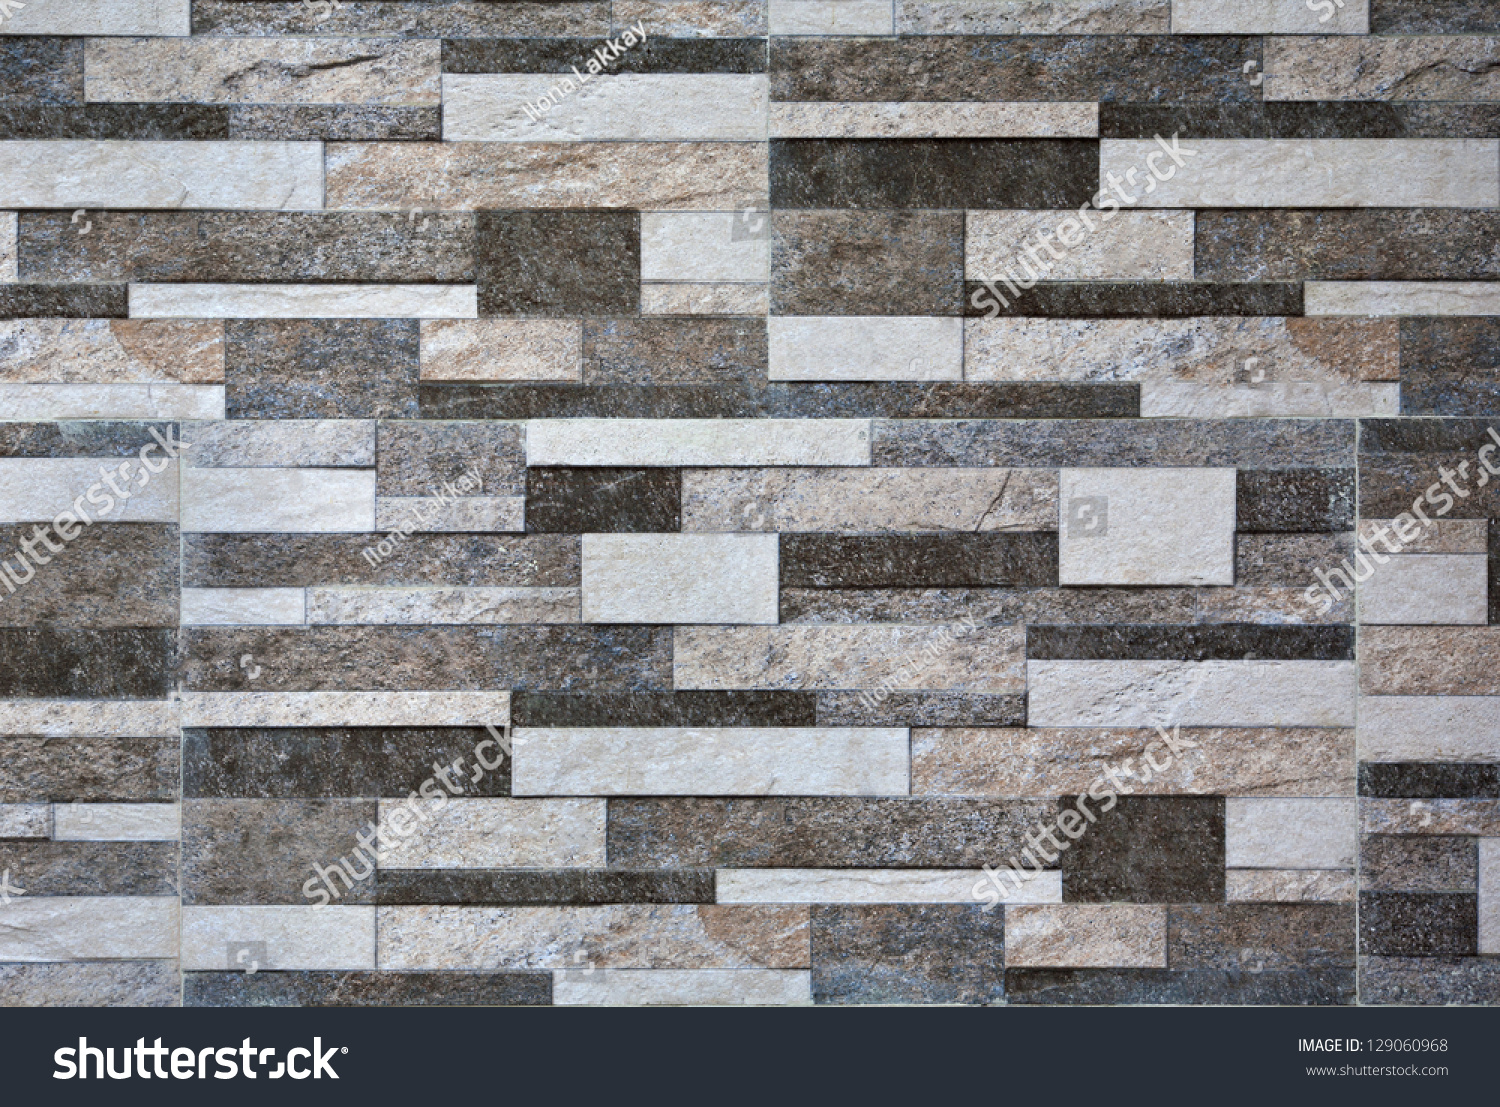 royalty-free modern marble stone wall background… #129060968 stock